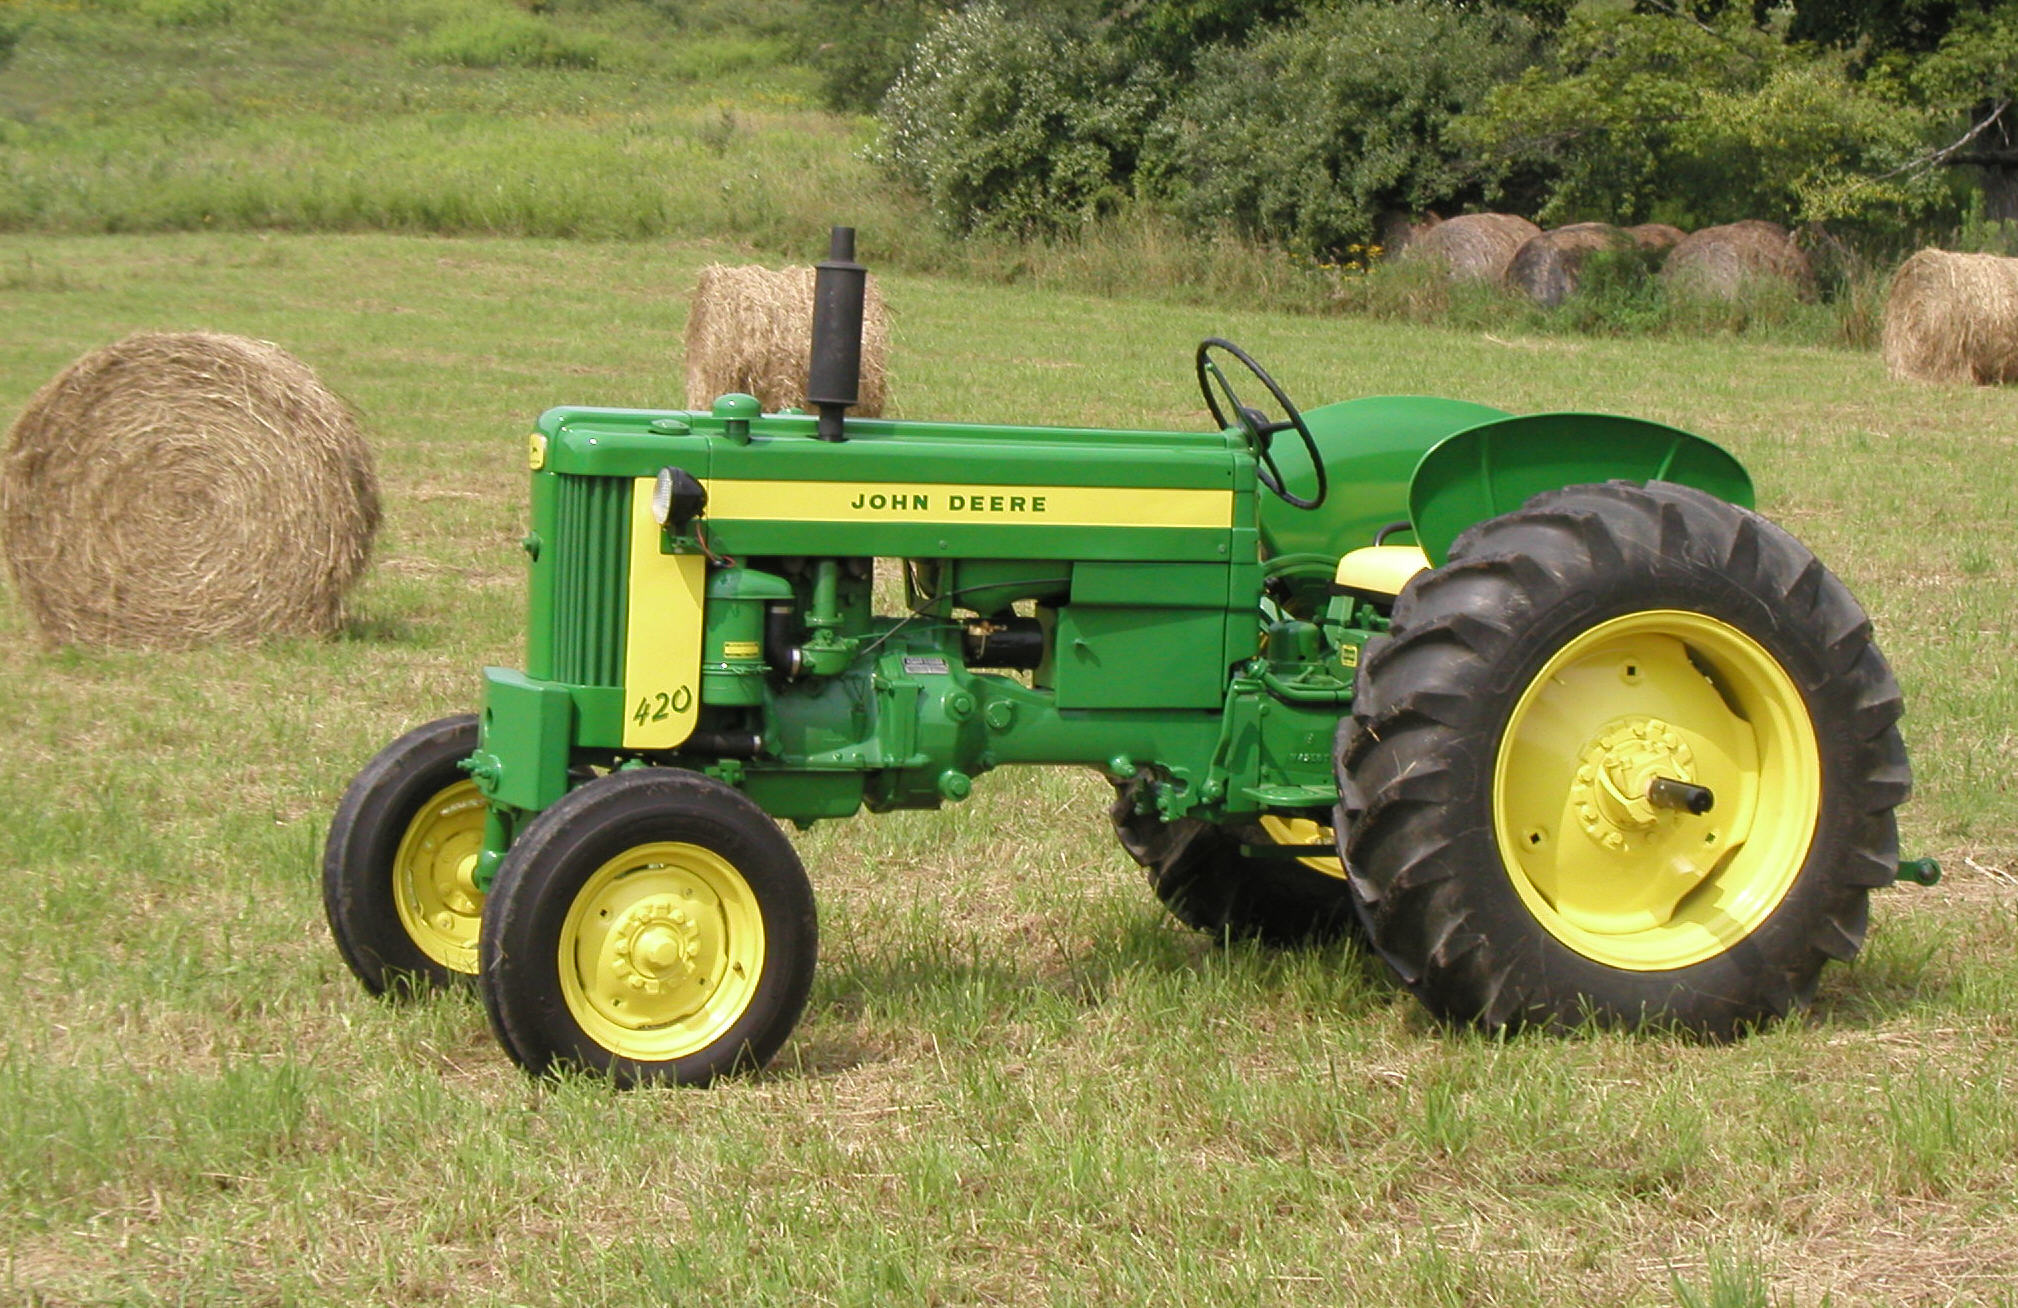 The Model 40 John Deere 420 Tractors And Crawlers 80 Wiring Diagram A Nicely Restored 1958 420w Owned By Good Friend In Very Picturesque Pa Farm Setting